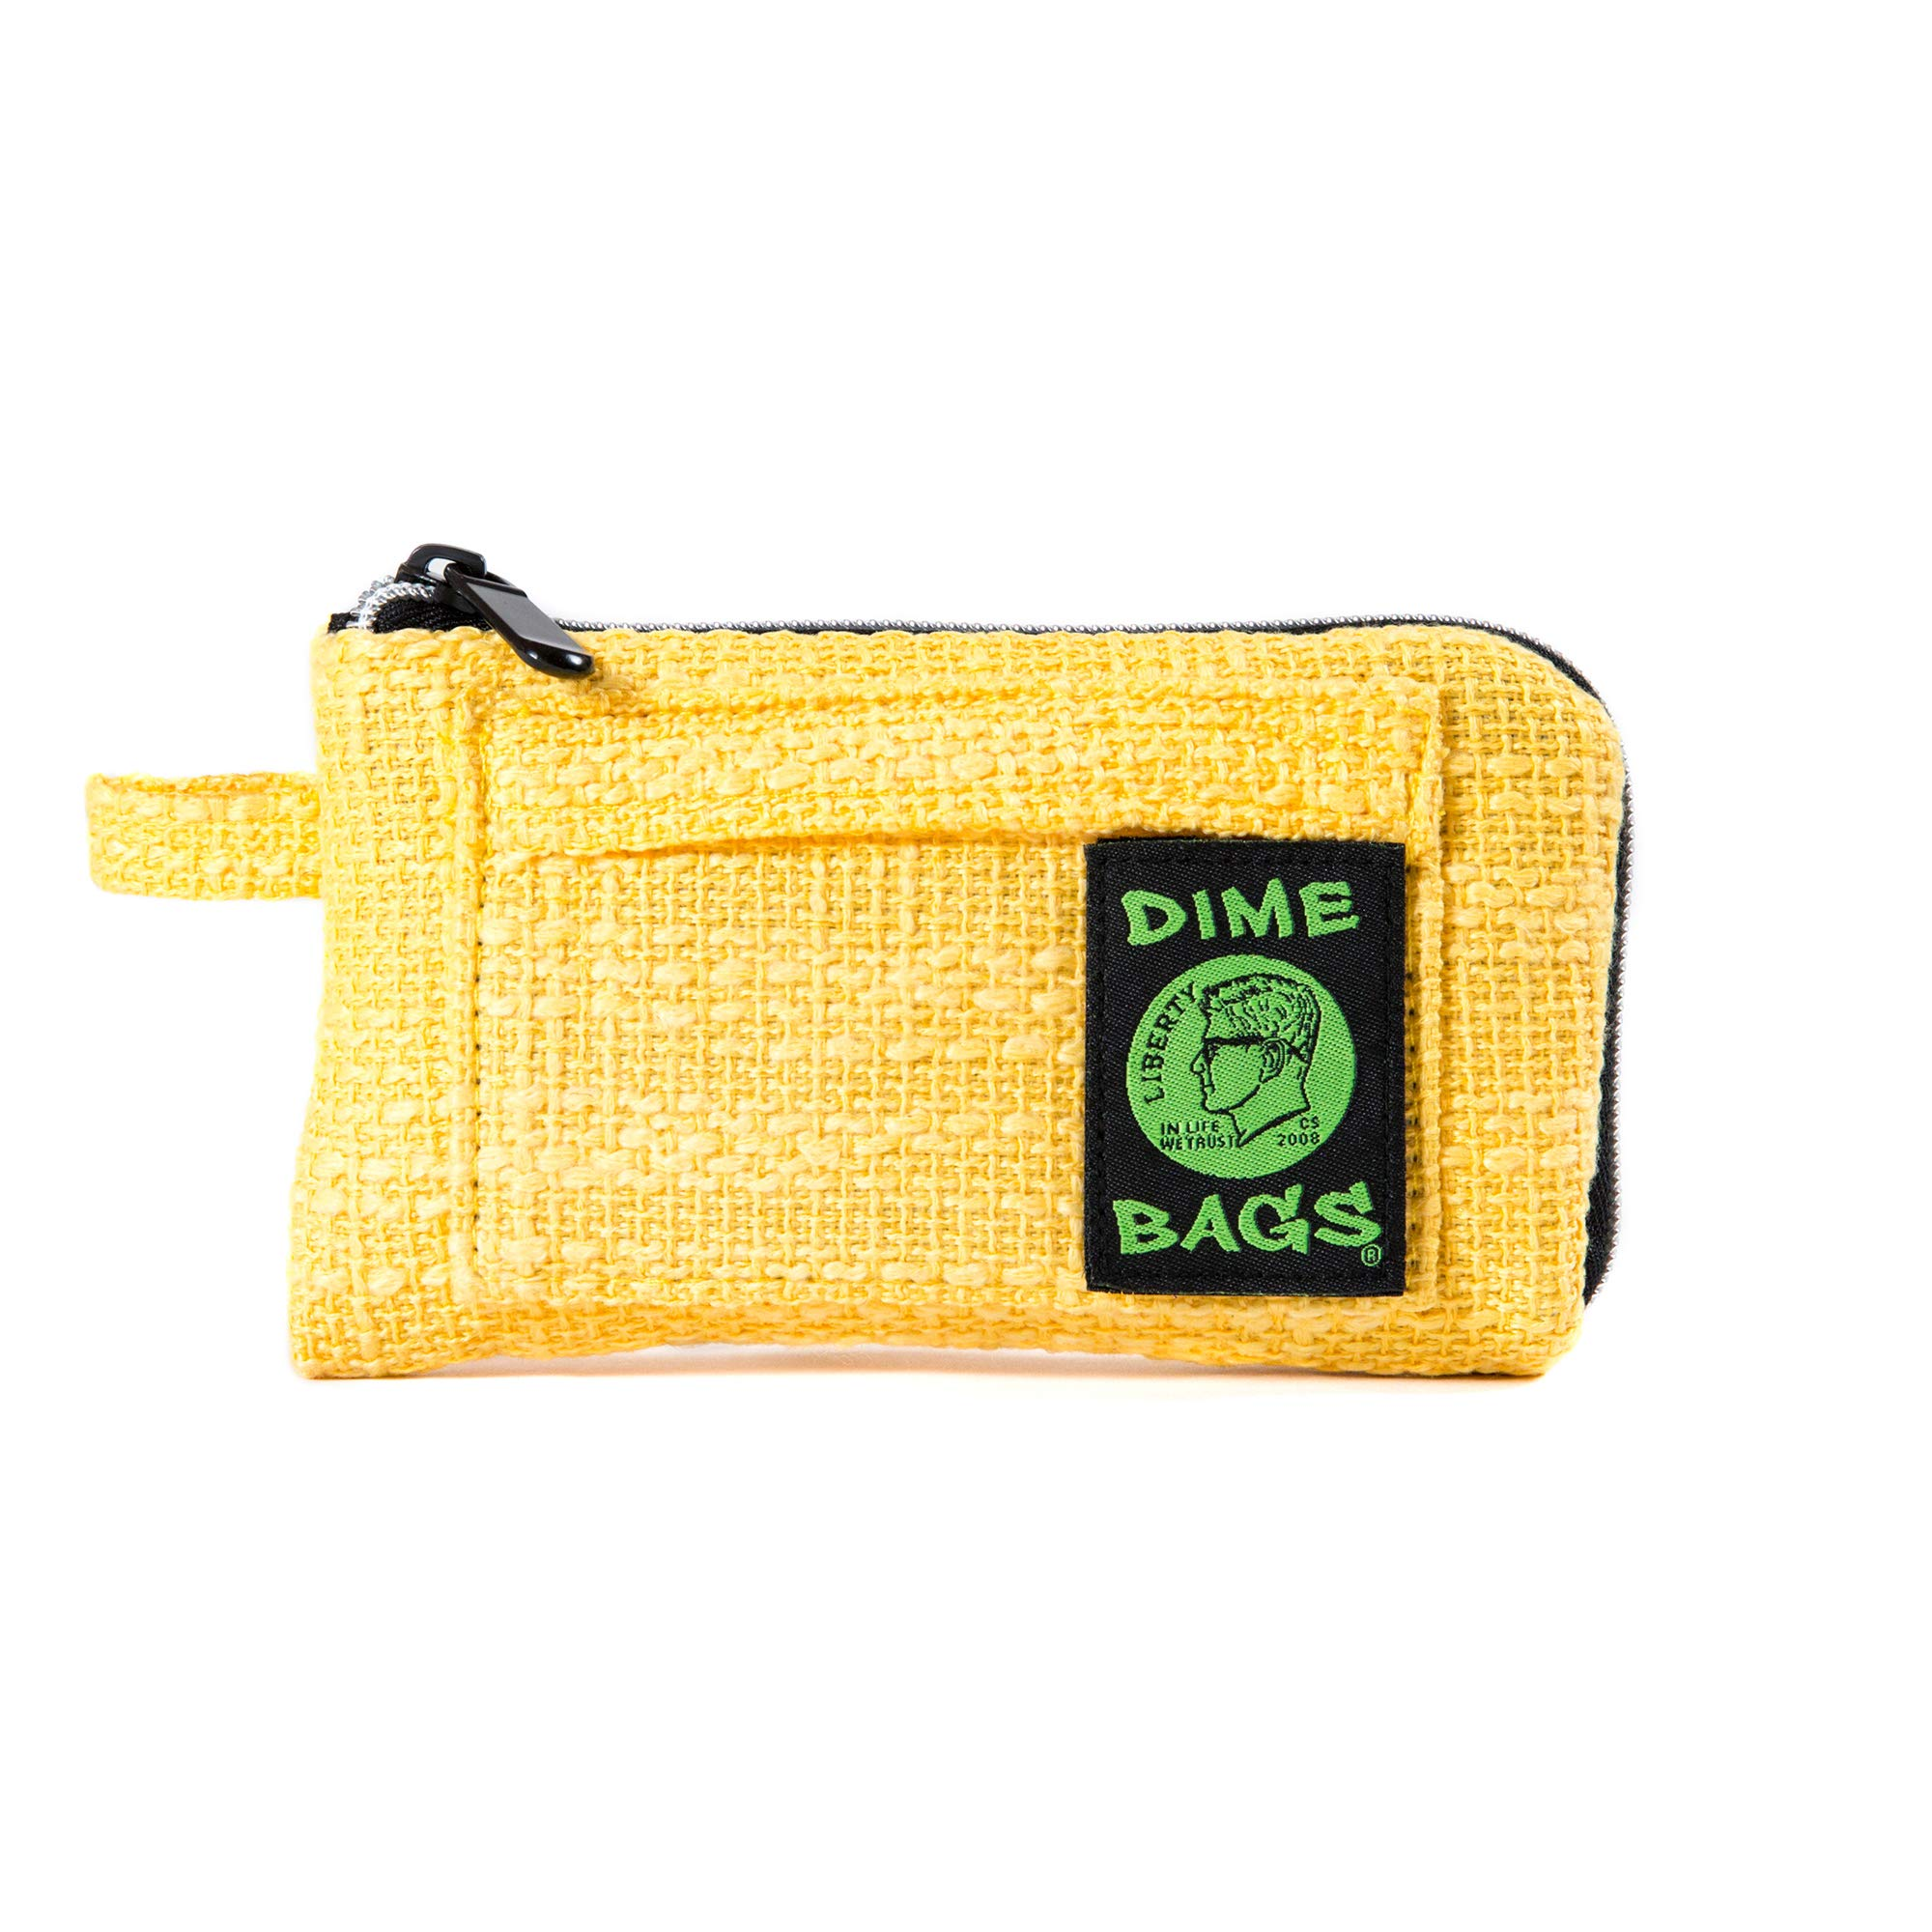 Padded Pouch - Soft Interior with Secure Heavy-Duty Zipper (Yellow, 7-Inch)